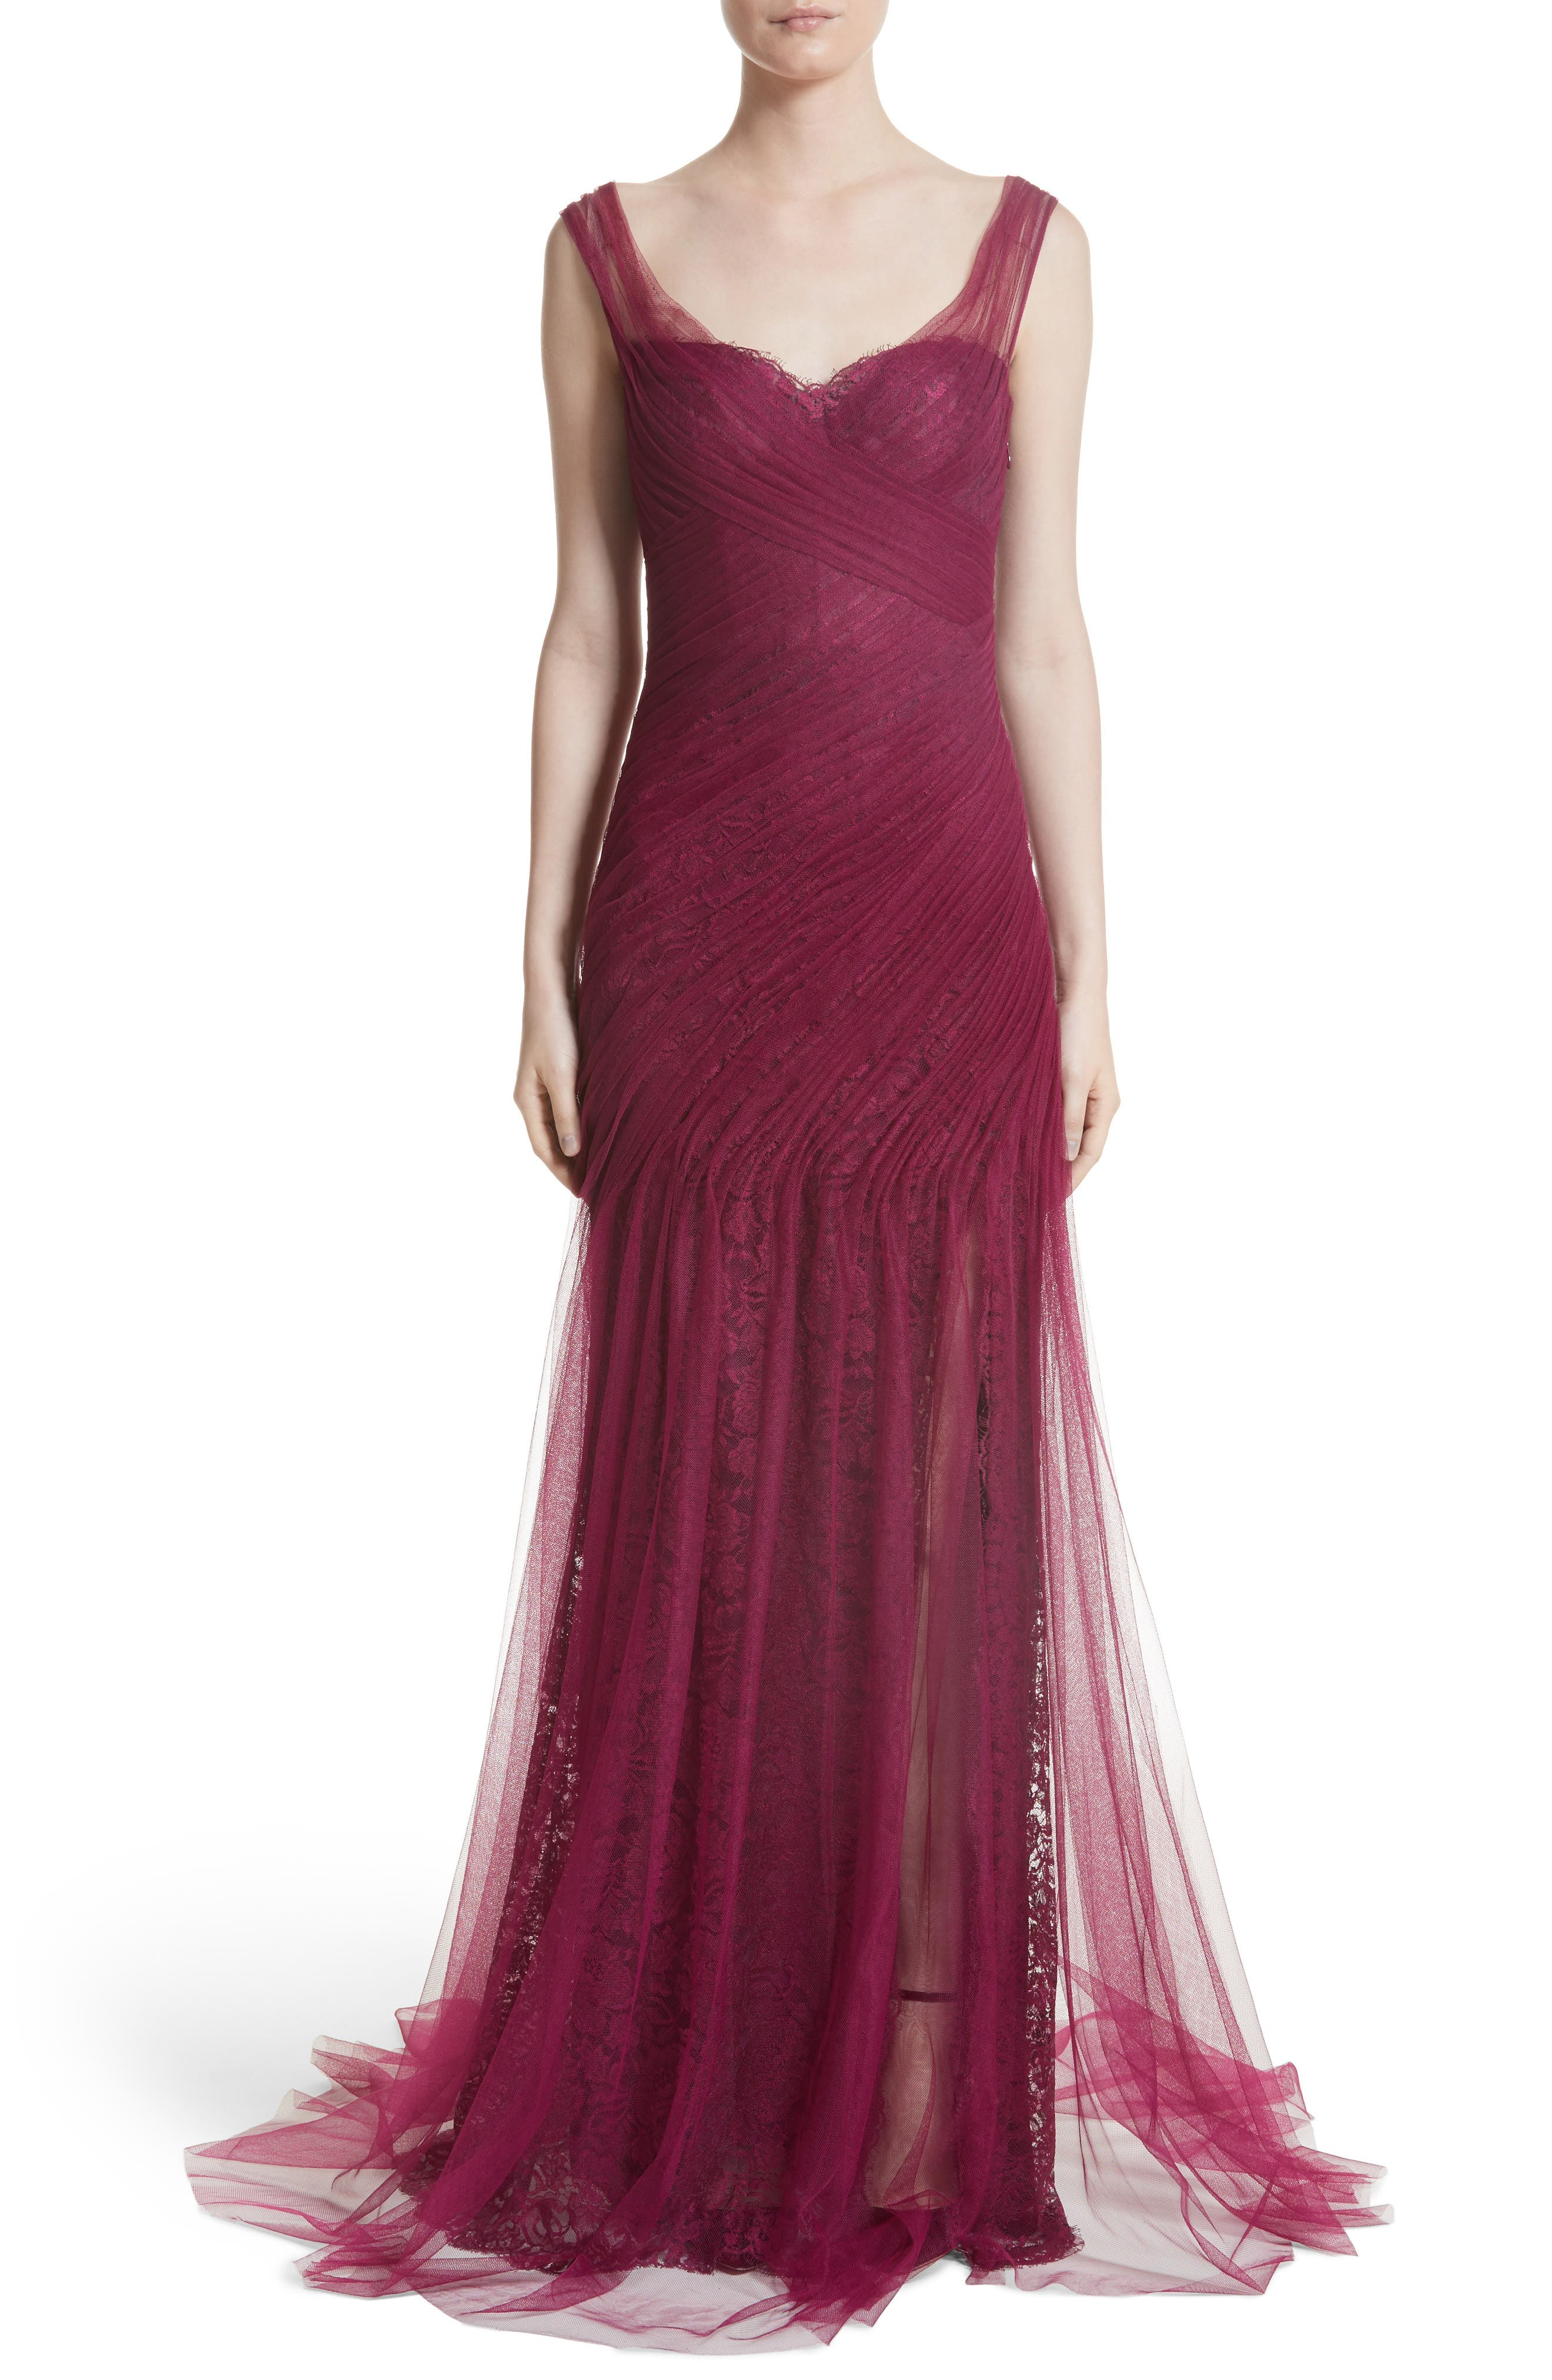 Alternate Image 1 Selected - Monique Lhuillier Draped Tulle & Lace Gown